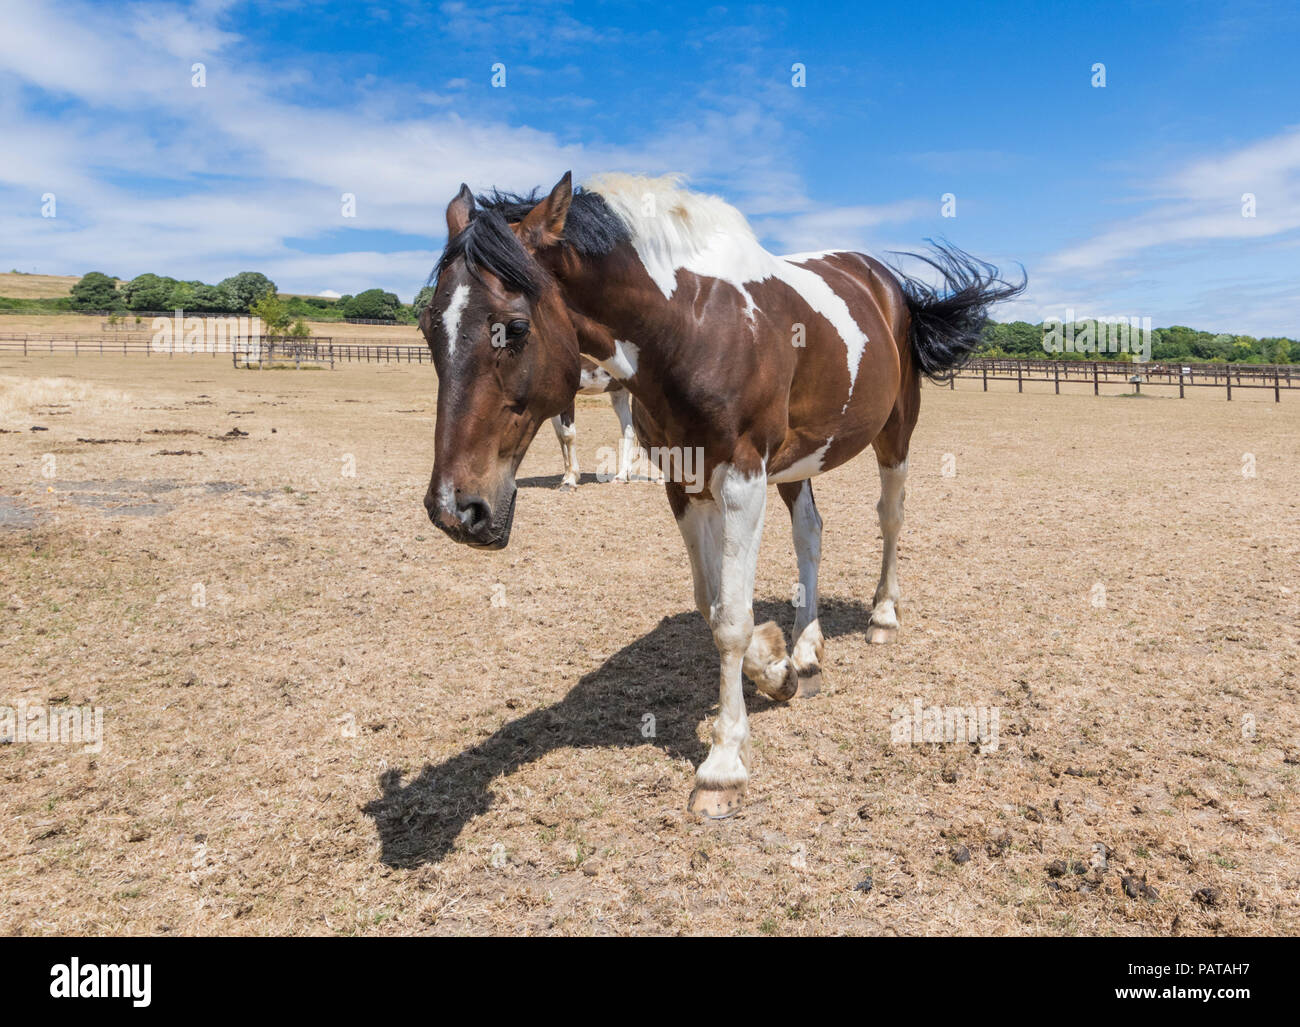 Brown horse walking in a dried up field with brown grass due to lack of rain, on a hot day in Summer in West Sussex, England, UK. - Stock Image